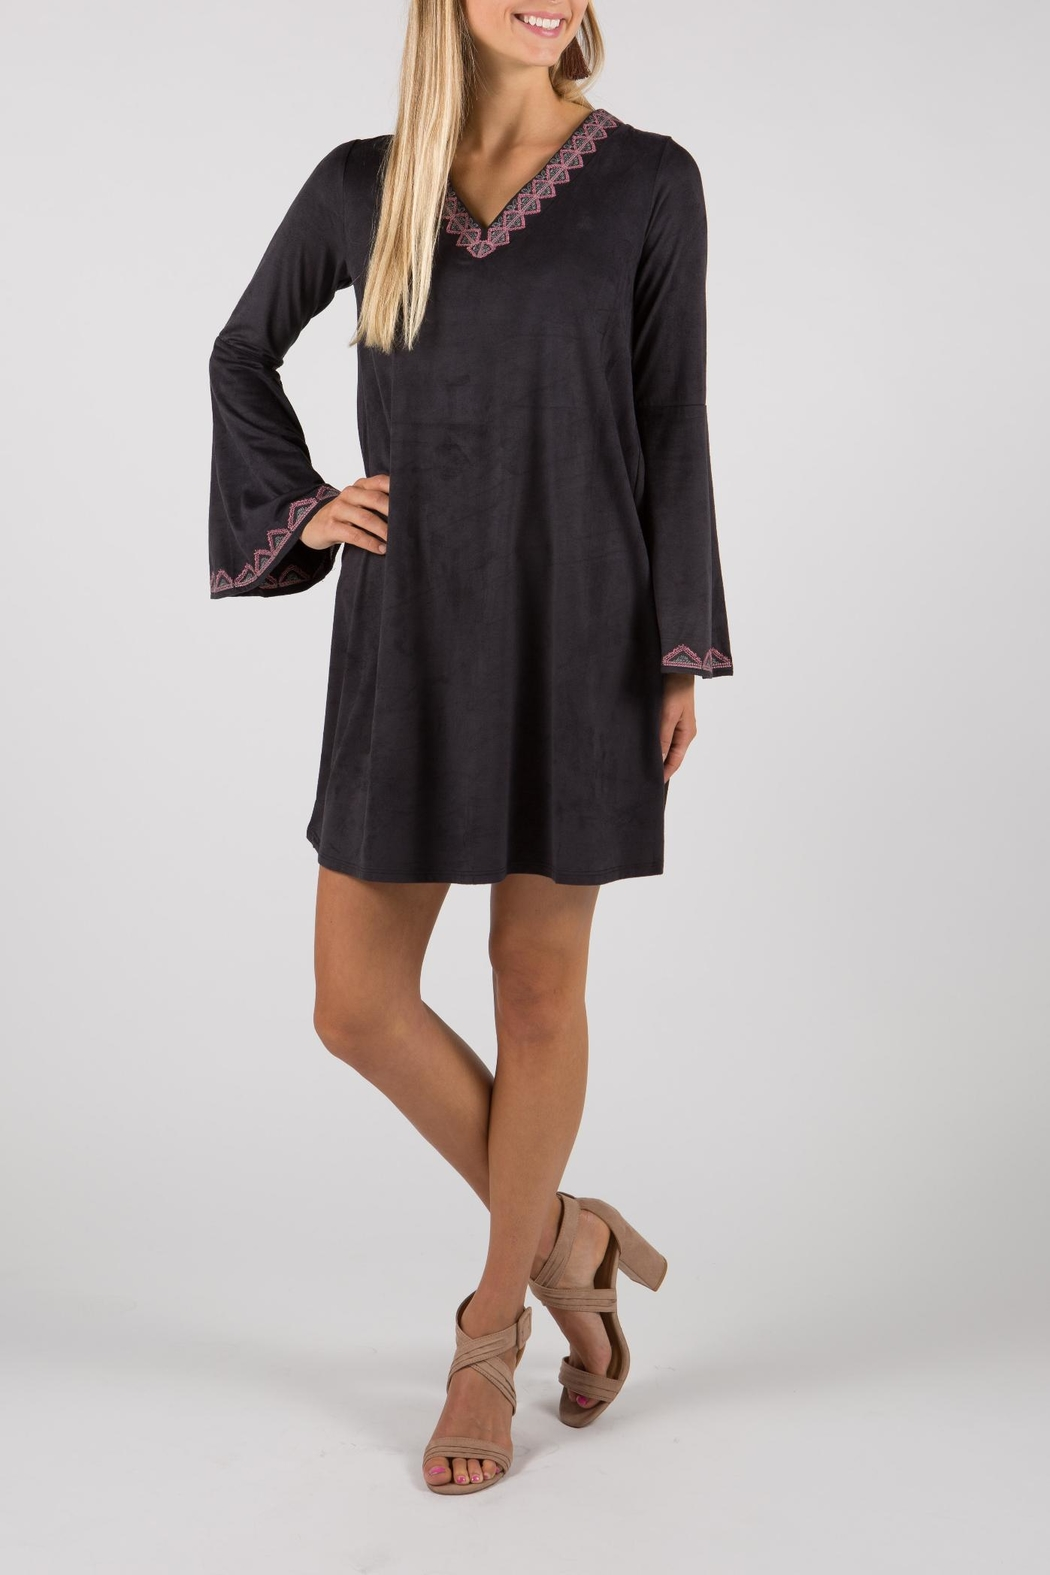 THML Clothing Bell Sleeve Dress - Back Cropped Image